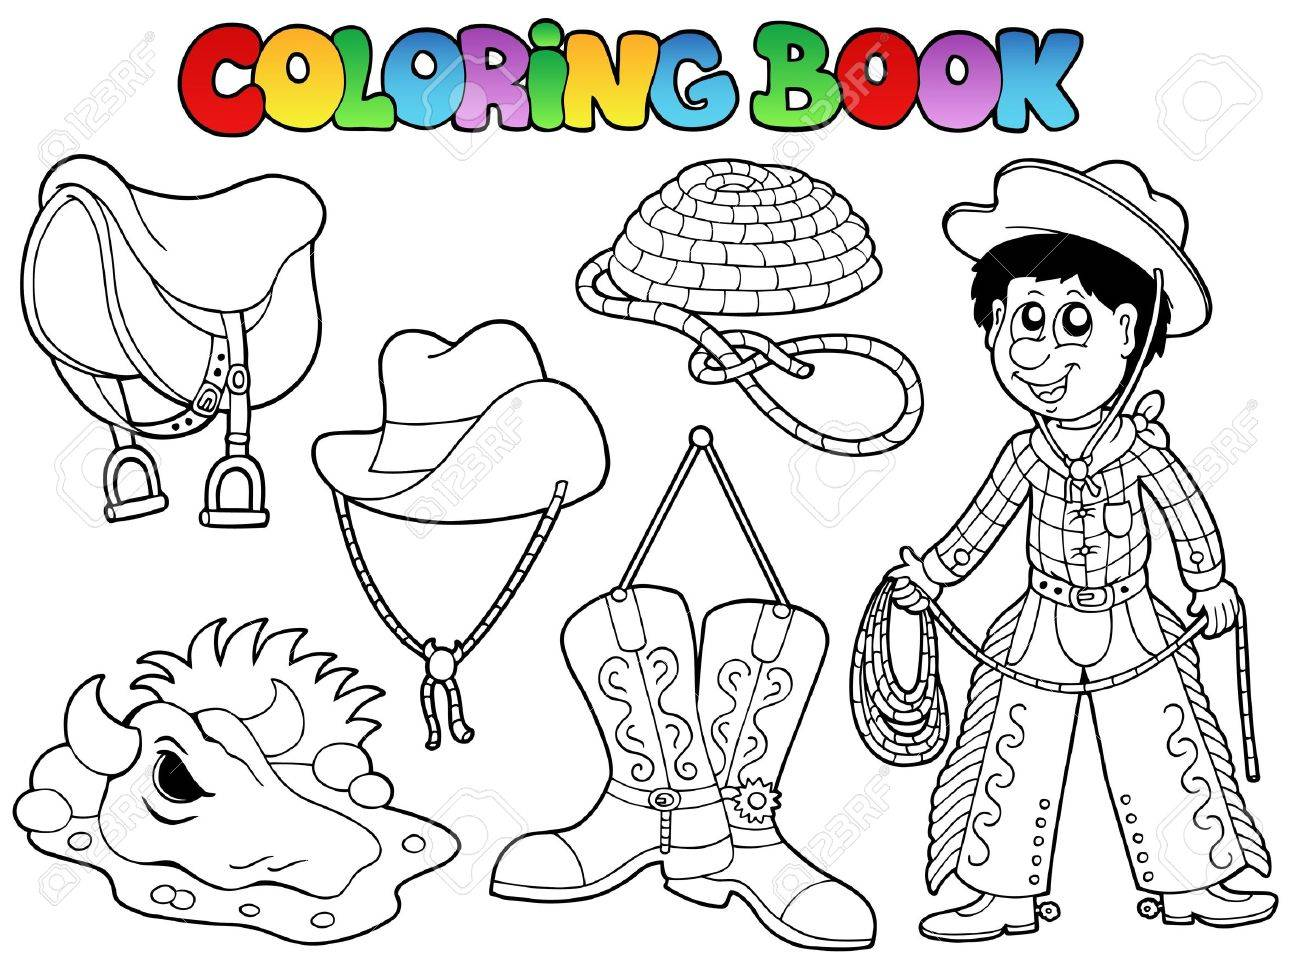 coloring book country collection illustration royalty free